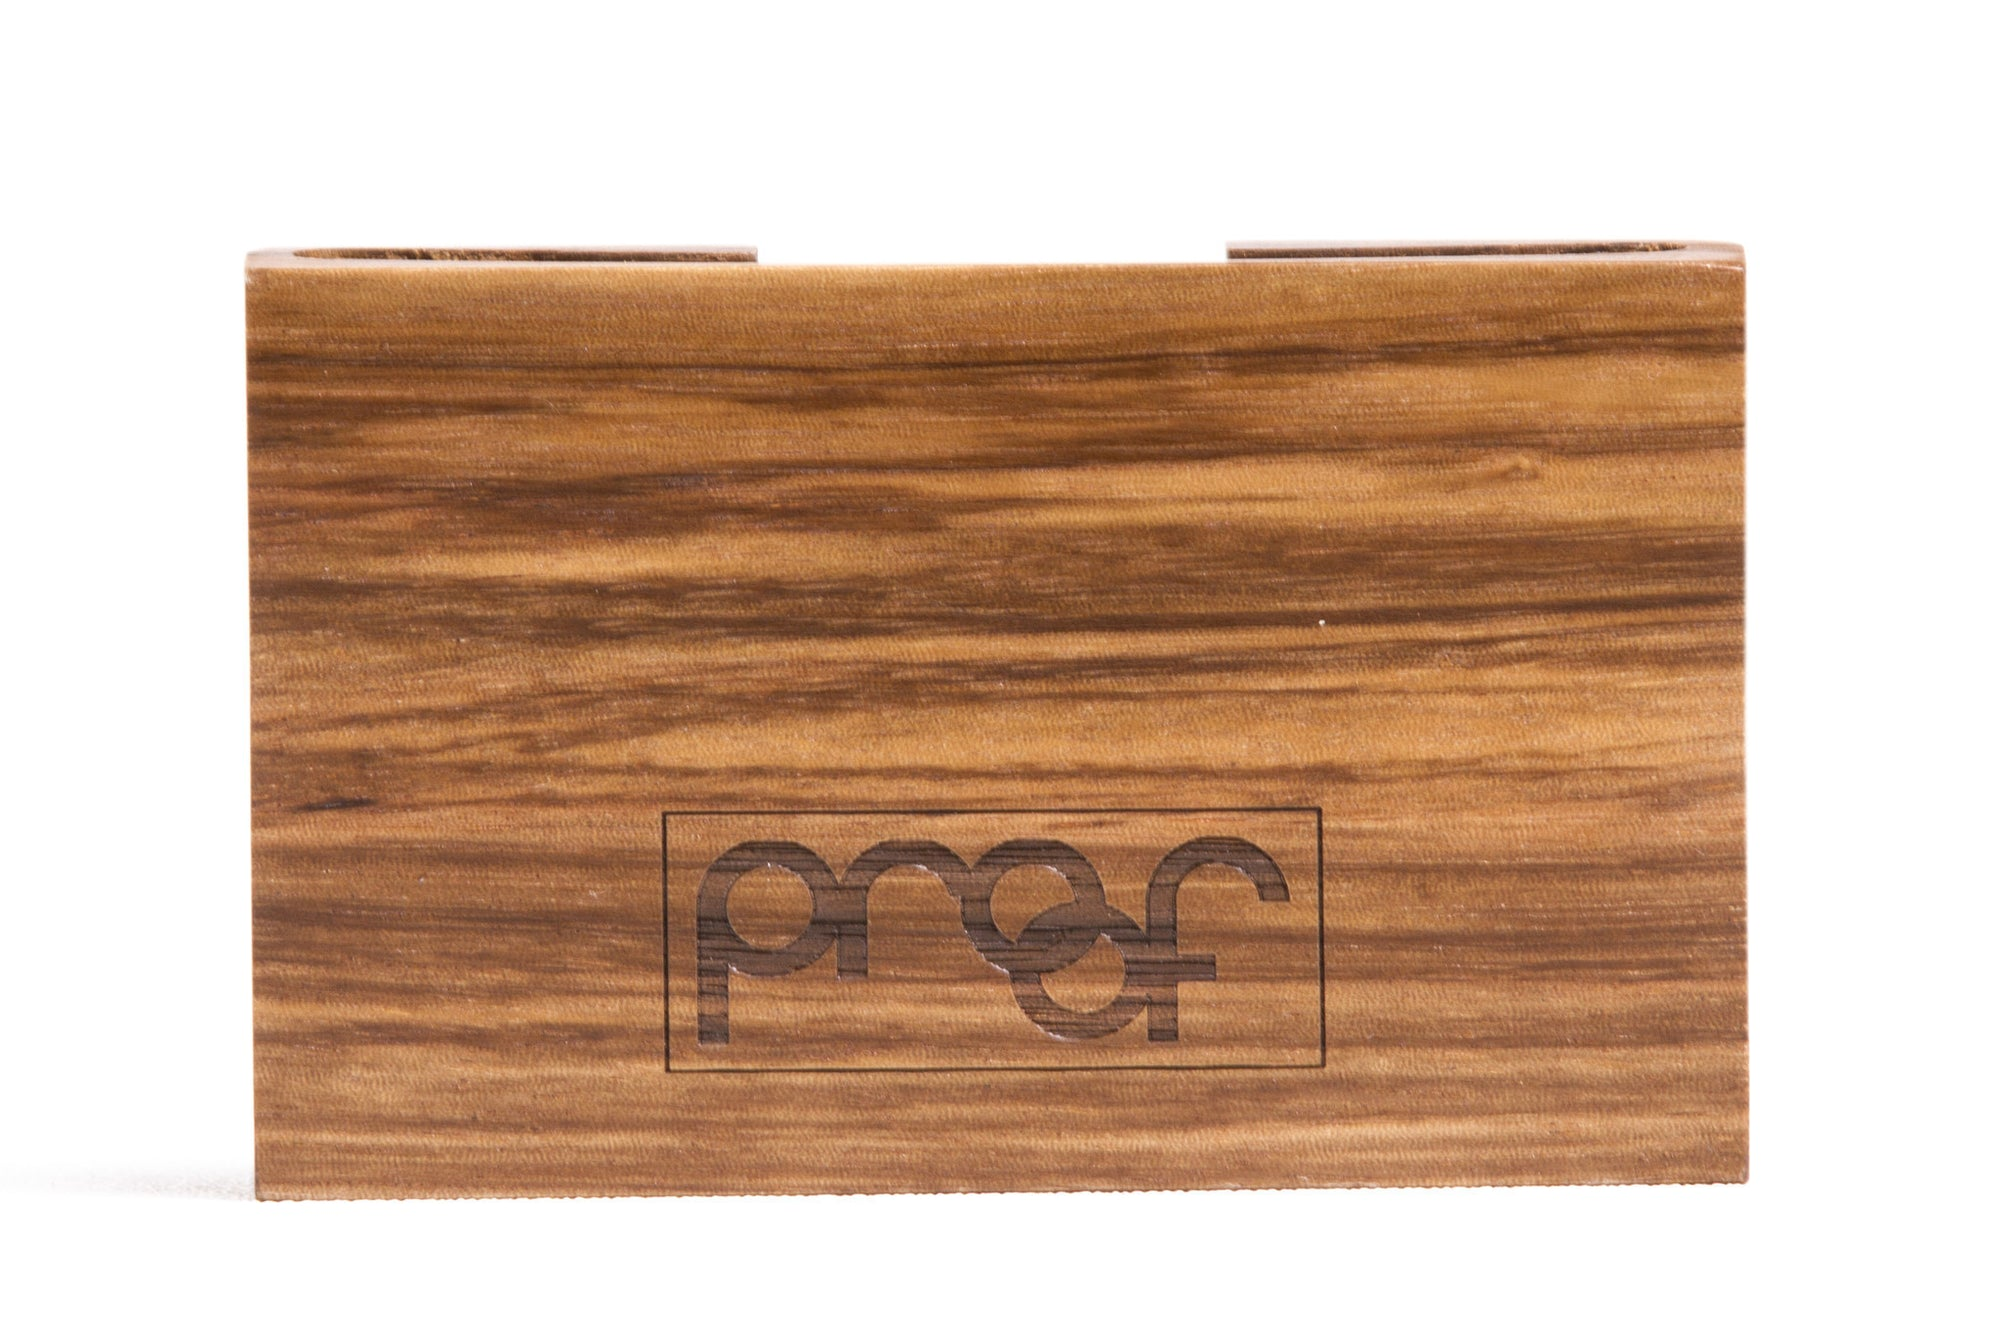 Proof Block Wood Wallet - humanity : style with a conscience